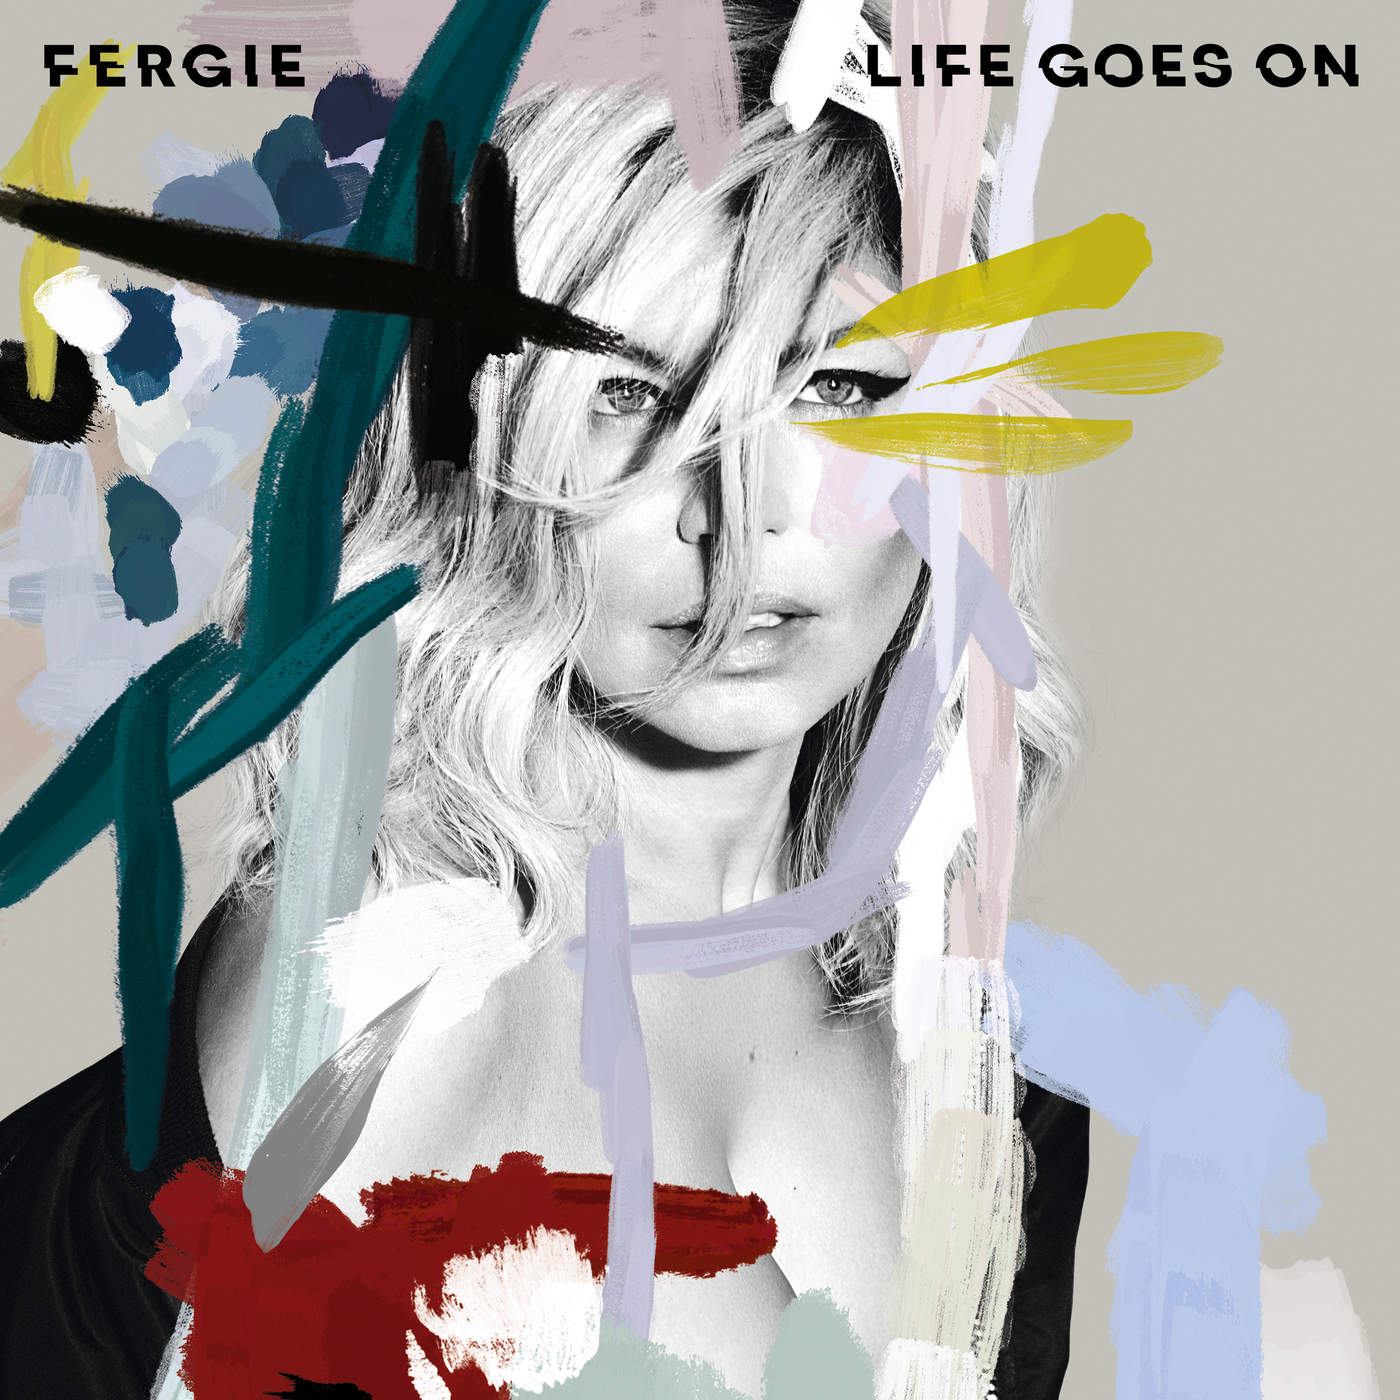 Fergie - Life Goes On - Single Cover